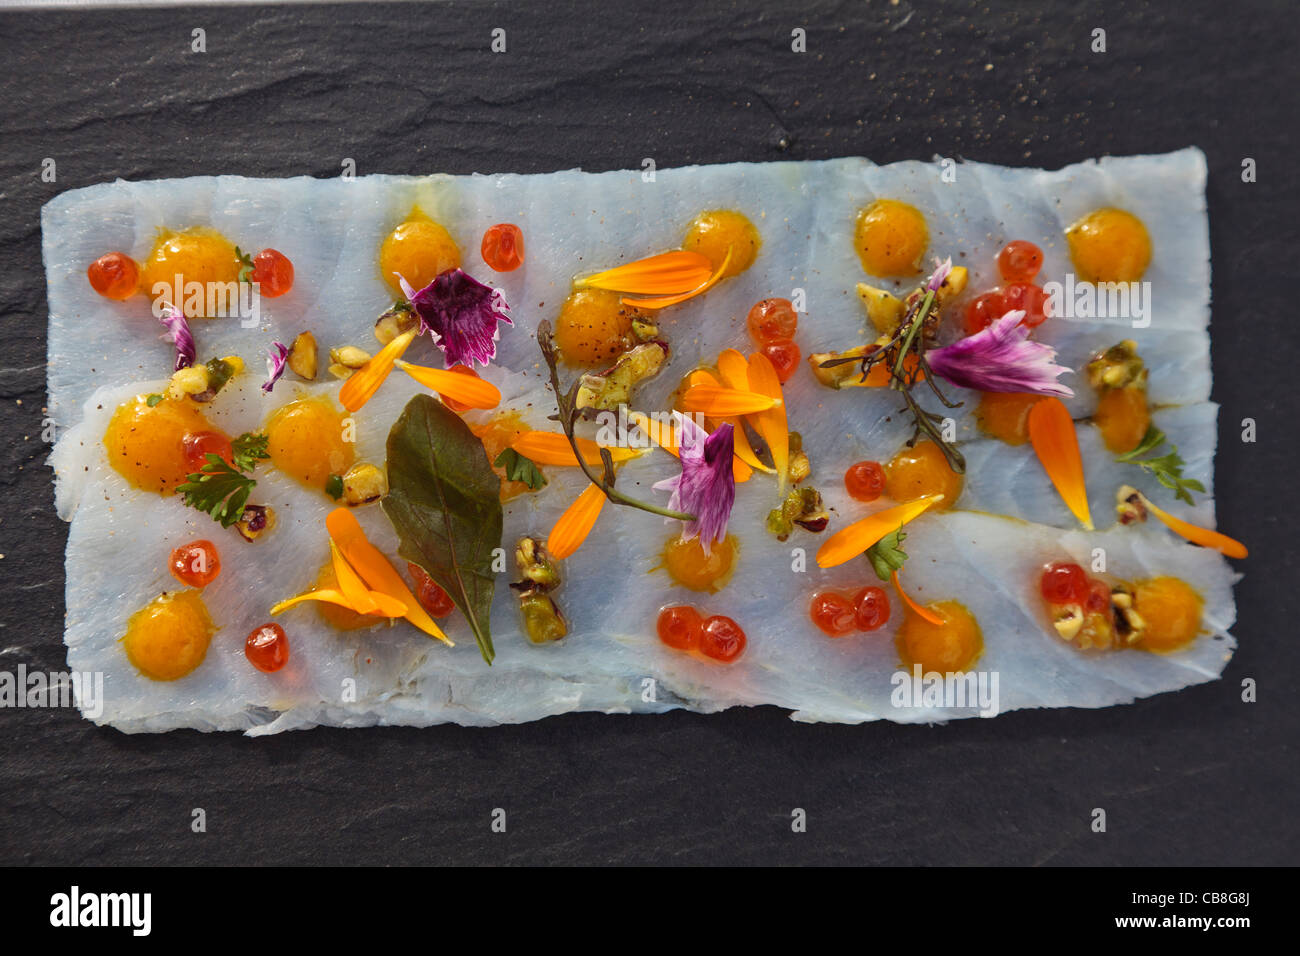 cod-carpaccio-served-on-a-slate-plate-CB